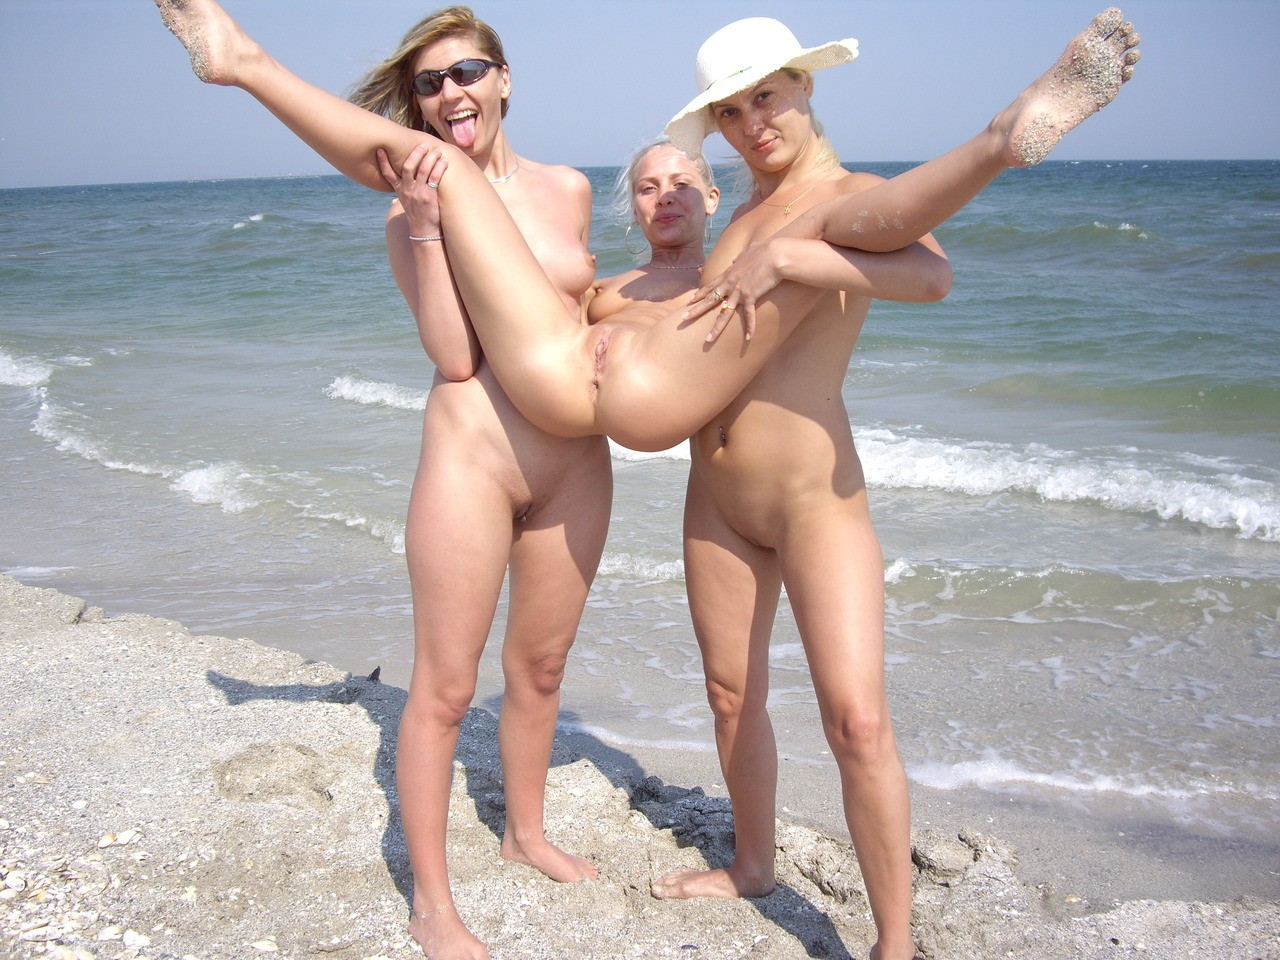 Nude beach hot brunette video shoot 8